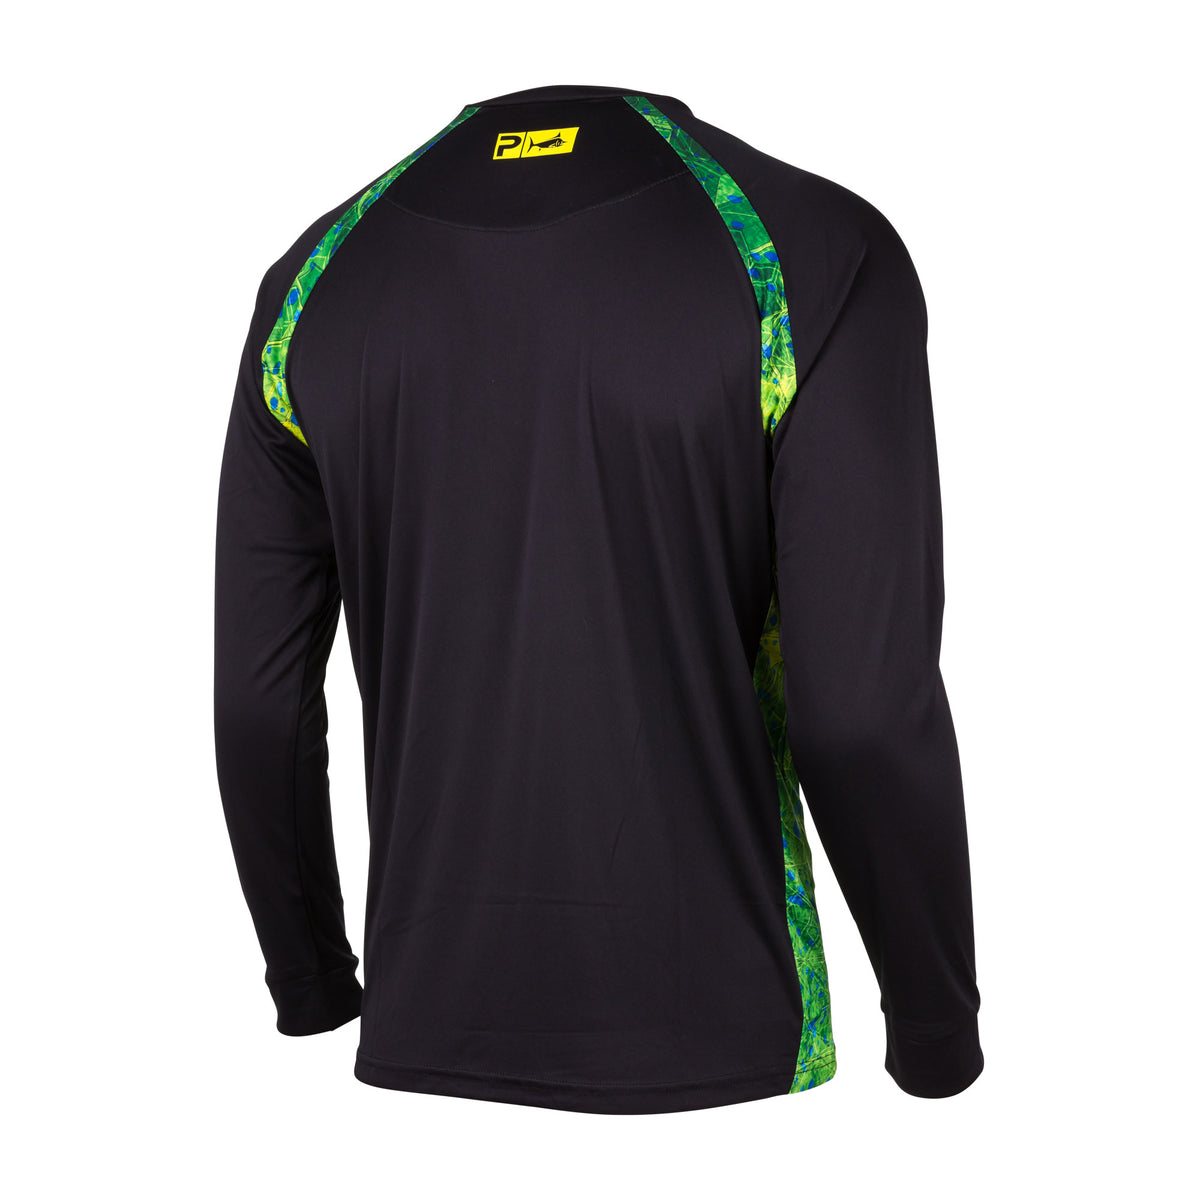 Vaportek Sideline Performance Shirt Big Image - 2